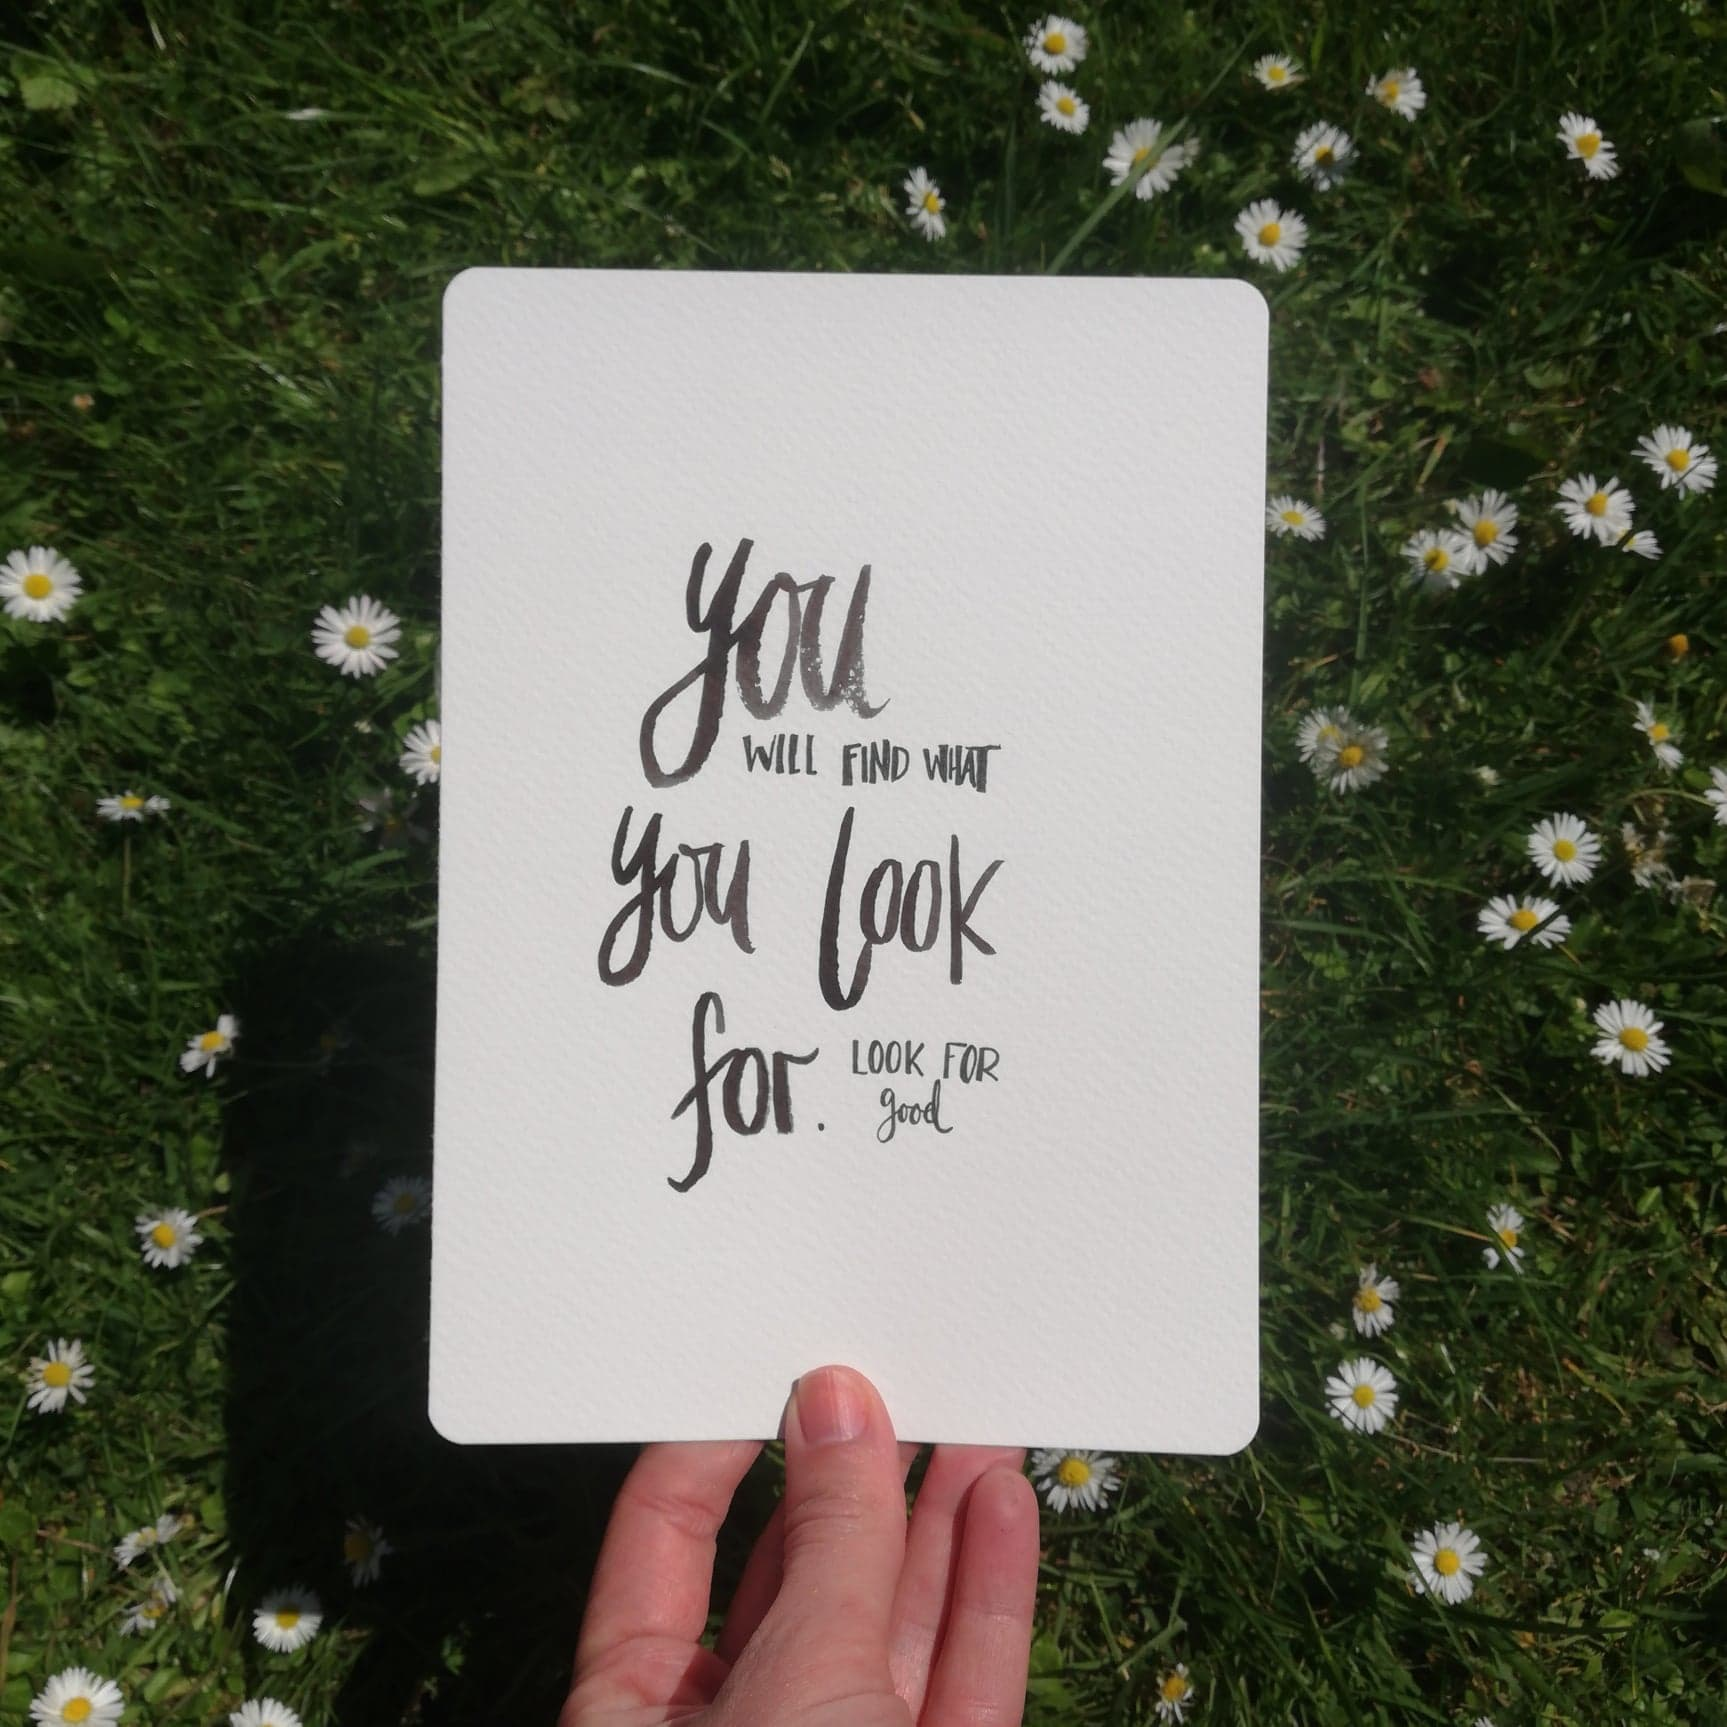 Seeking joy and harness your thoughts - lucy joy